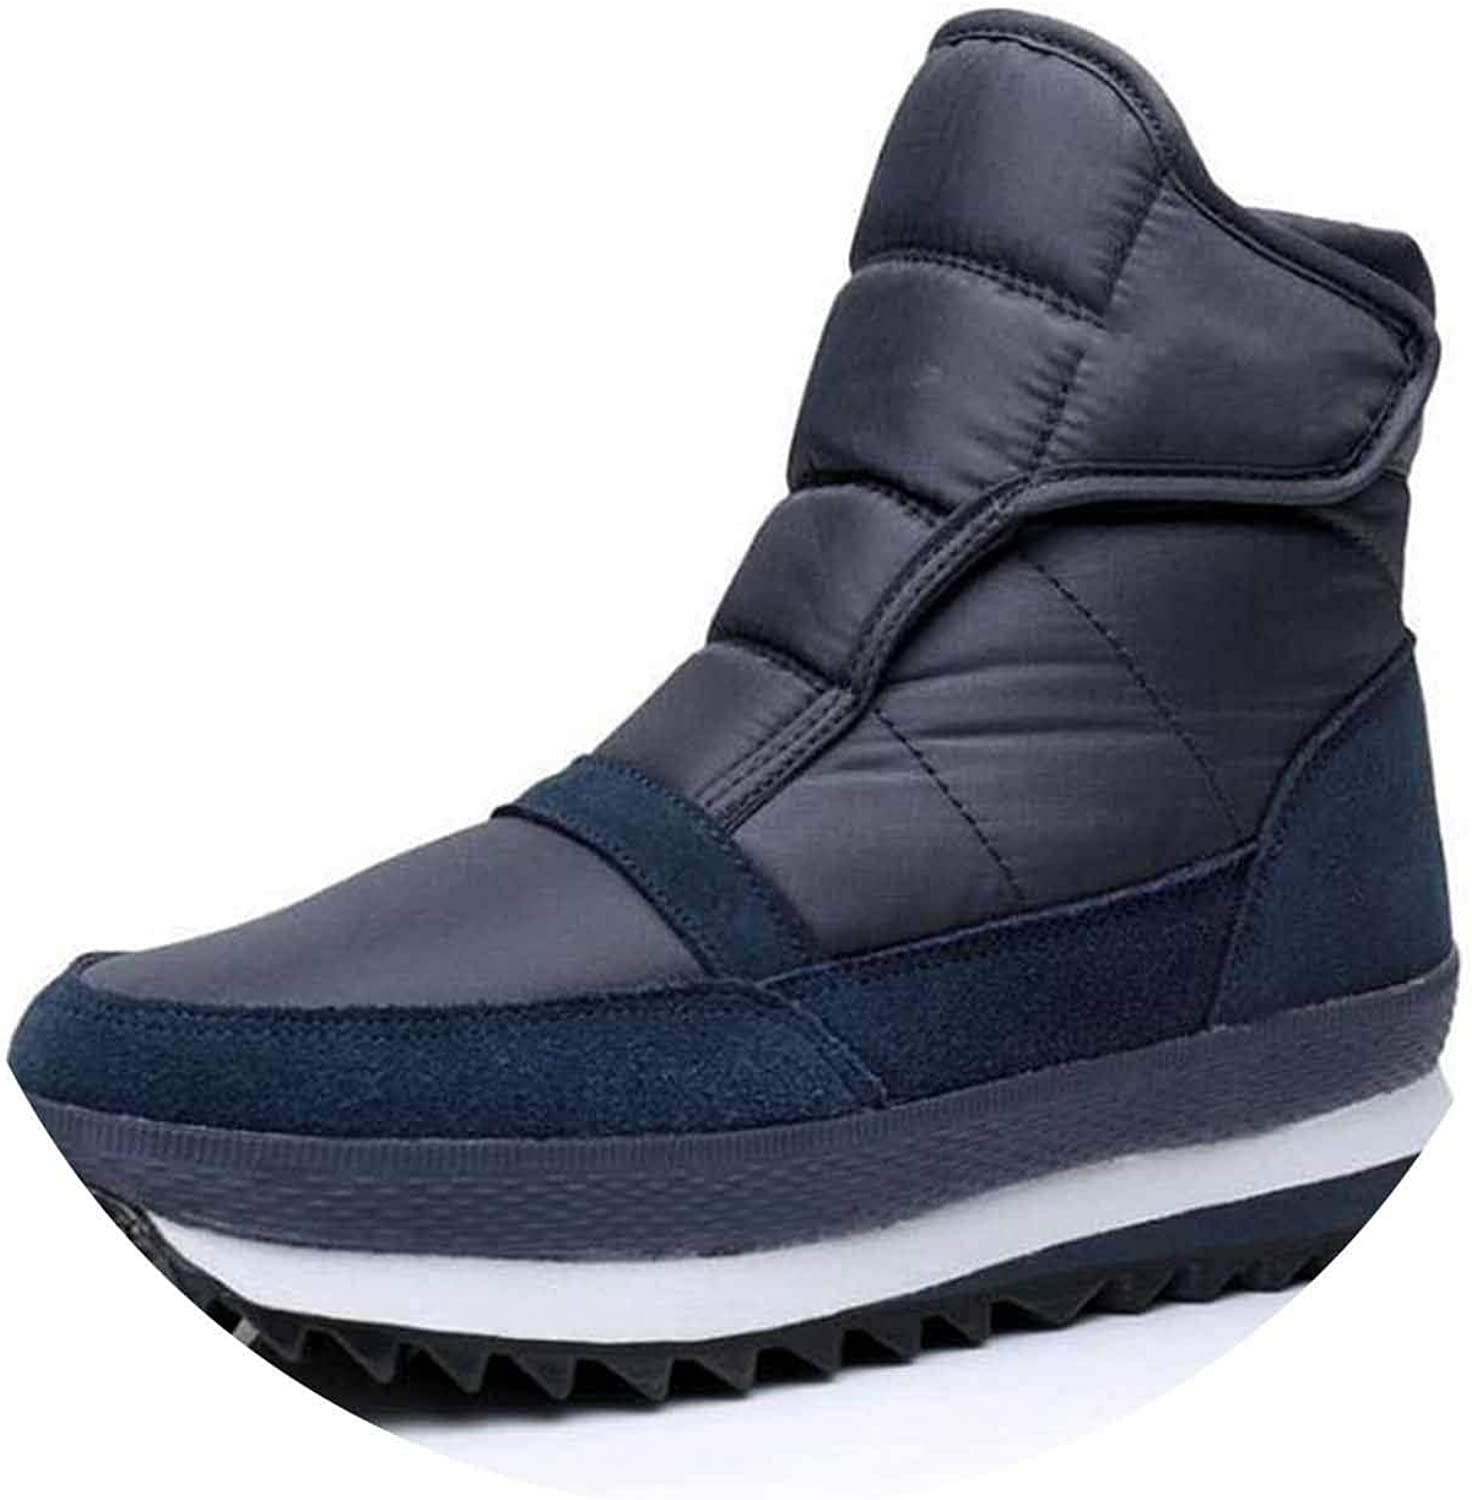 Winter Snow Boots Flat Non-Slip Winter shoes Ankle Boots Warm Winter Boots 35-42